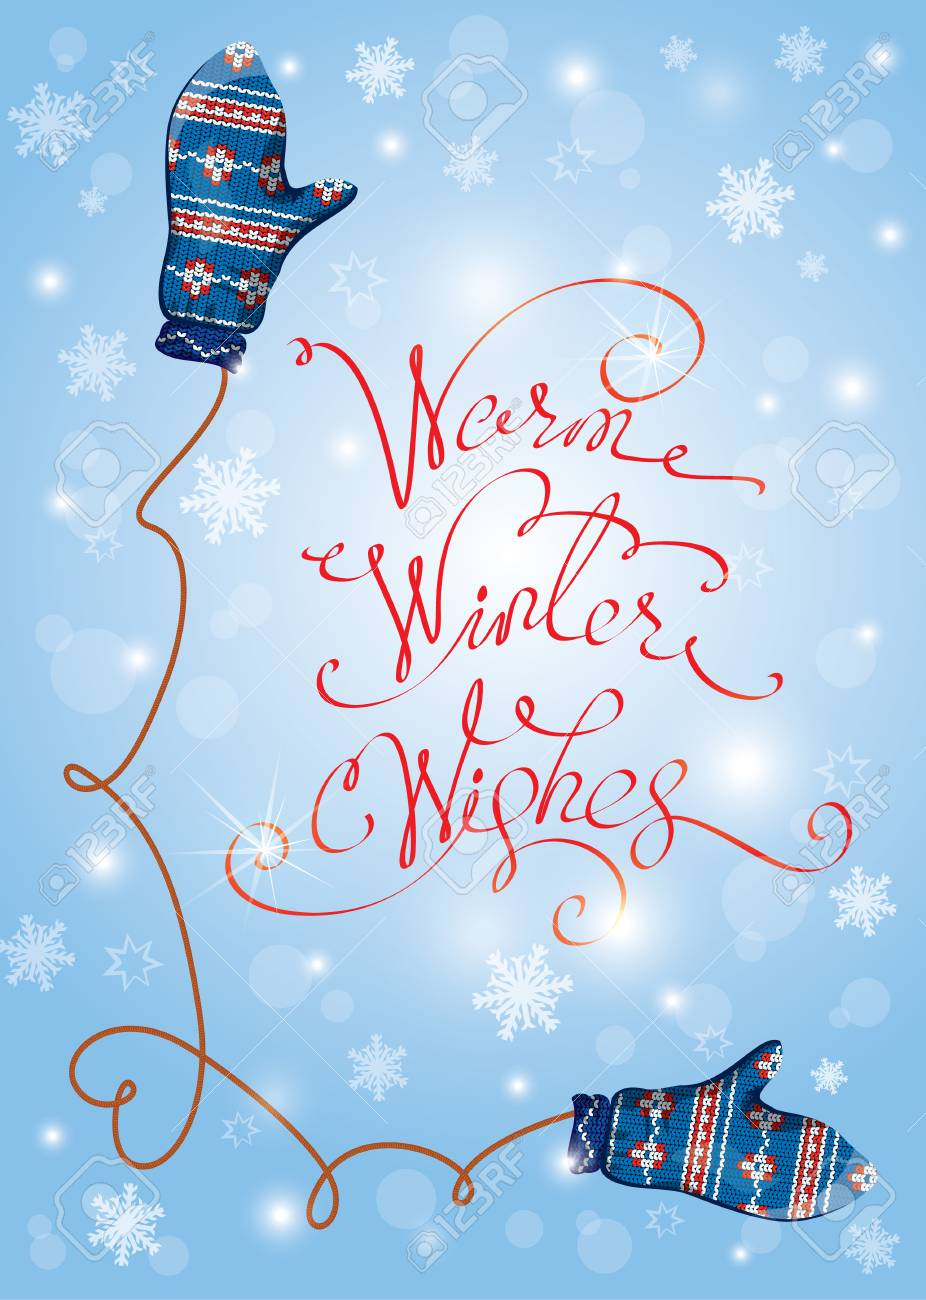 greeting merry christmas and happy new year card with cute blue knitted mitten pair and snowflakes